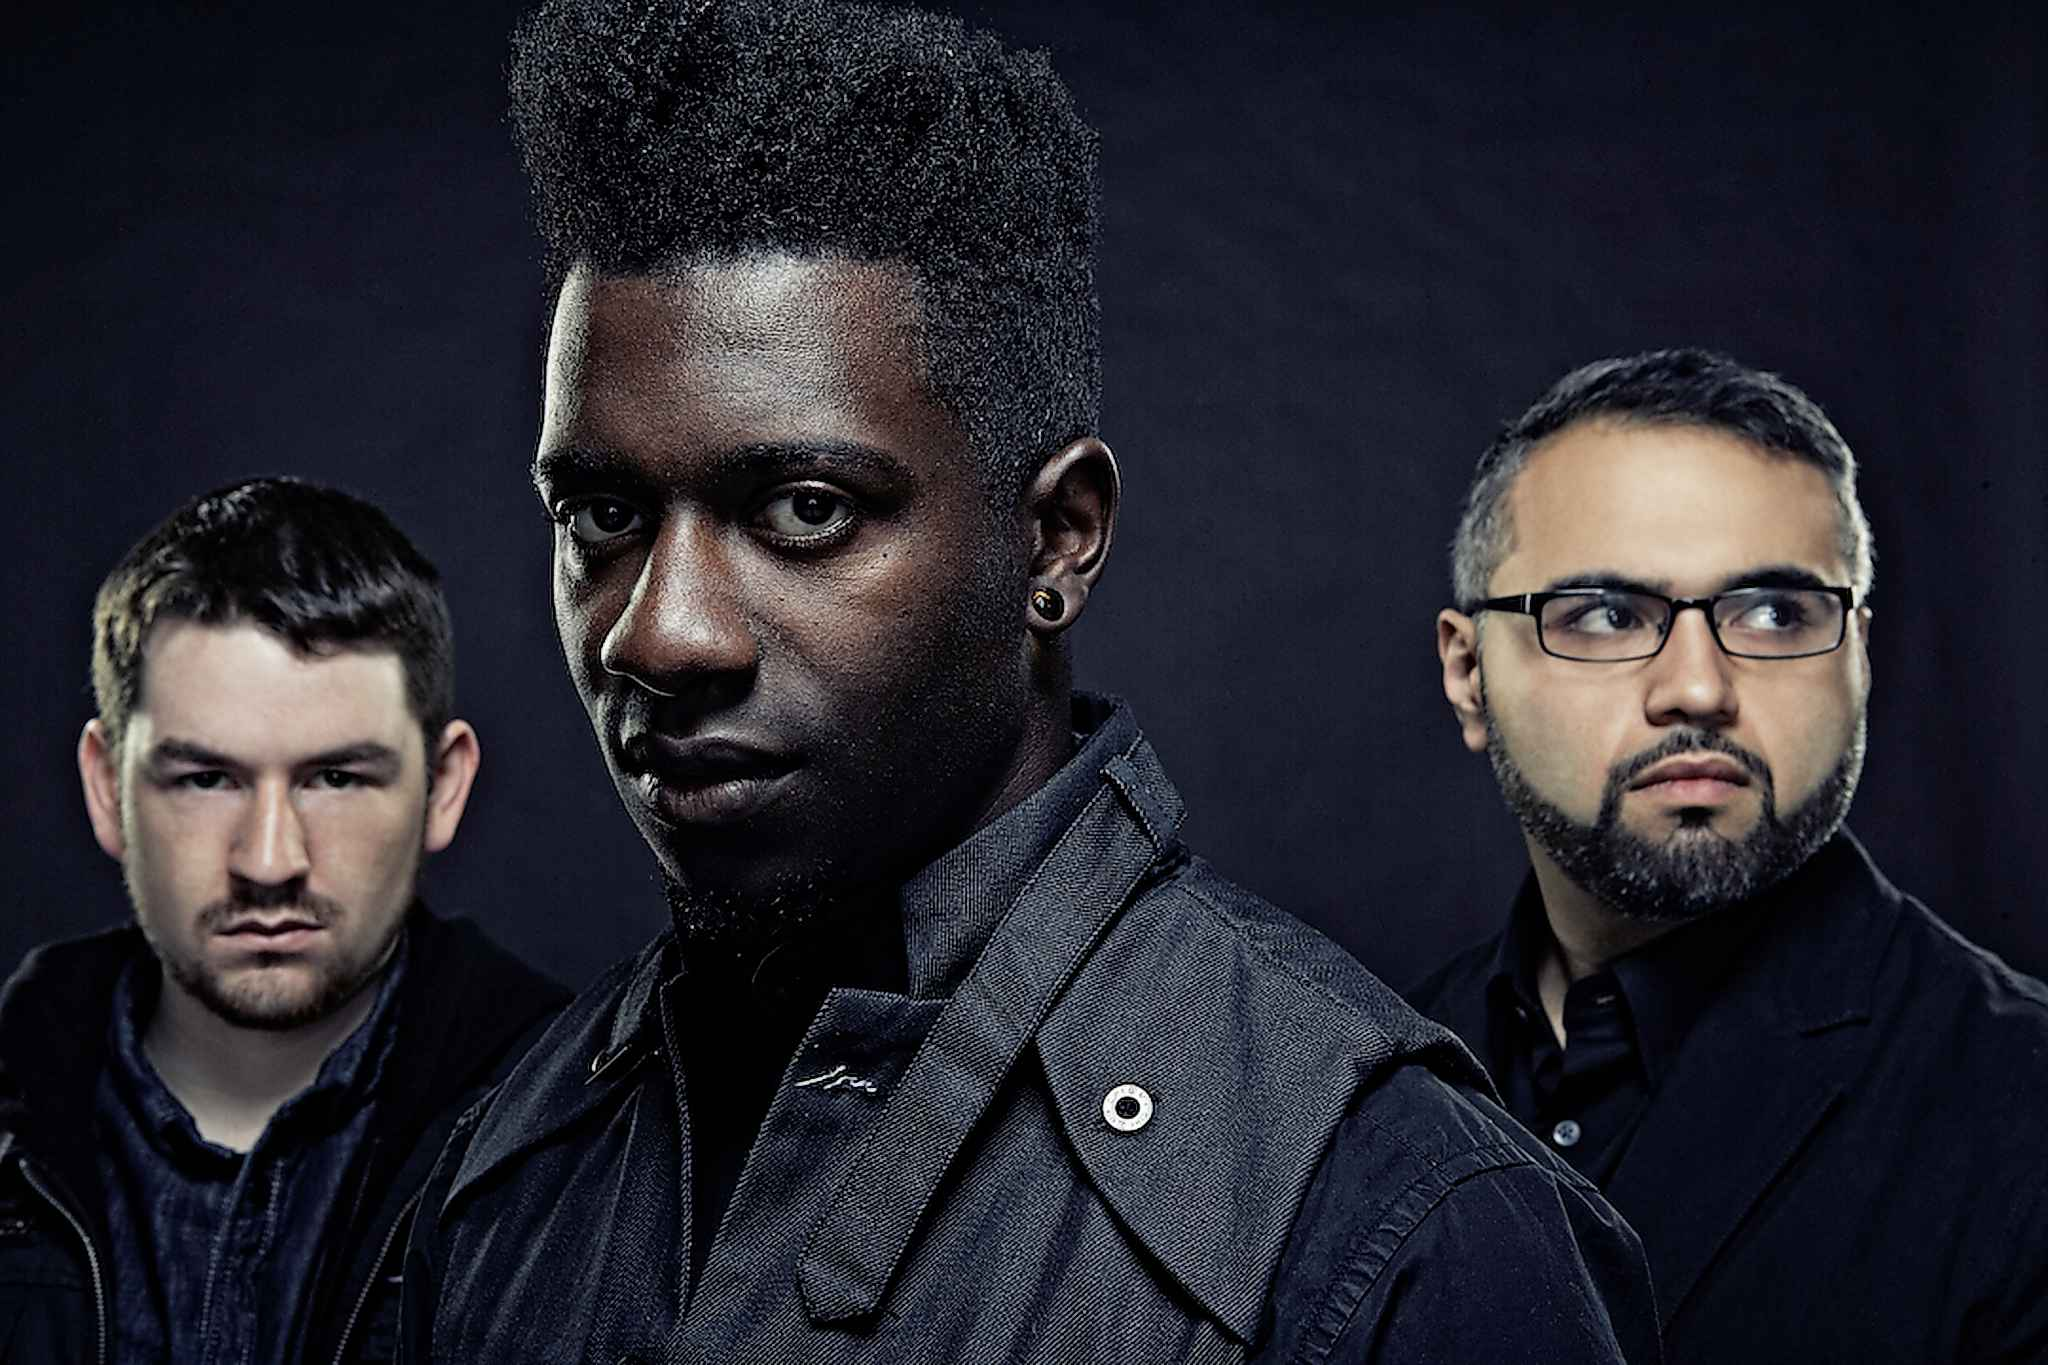 Washington, D.C. prog-metal outfit Animals as Leaders play their first-ever symphonic show with the WSO on Wednesday Jan. 30 a day after their own concert. (Supplied)